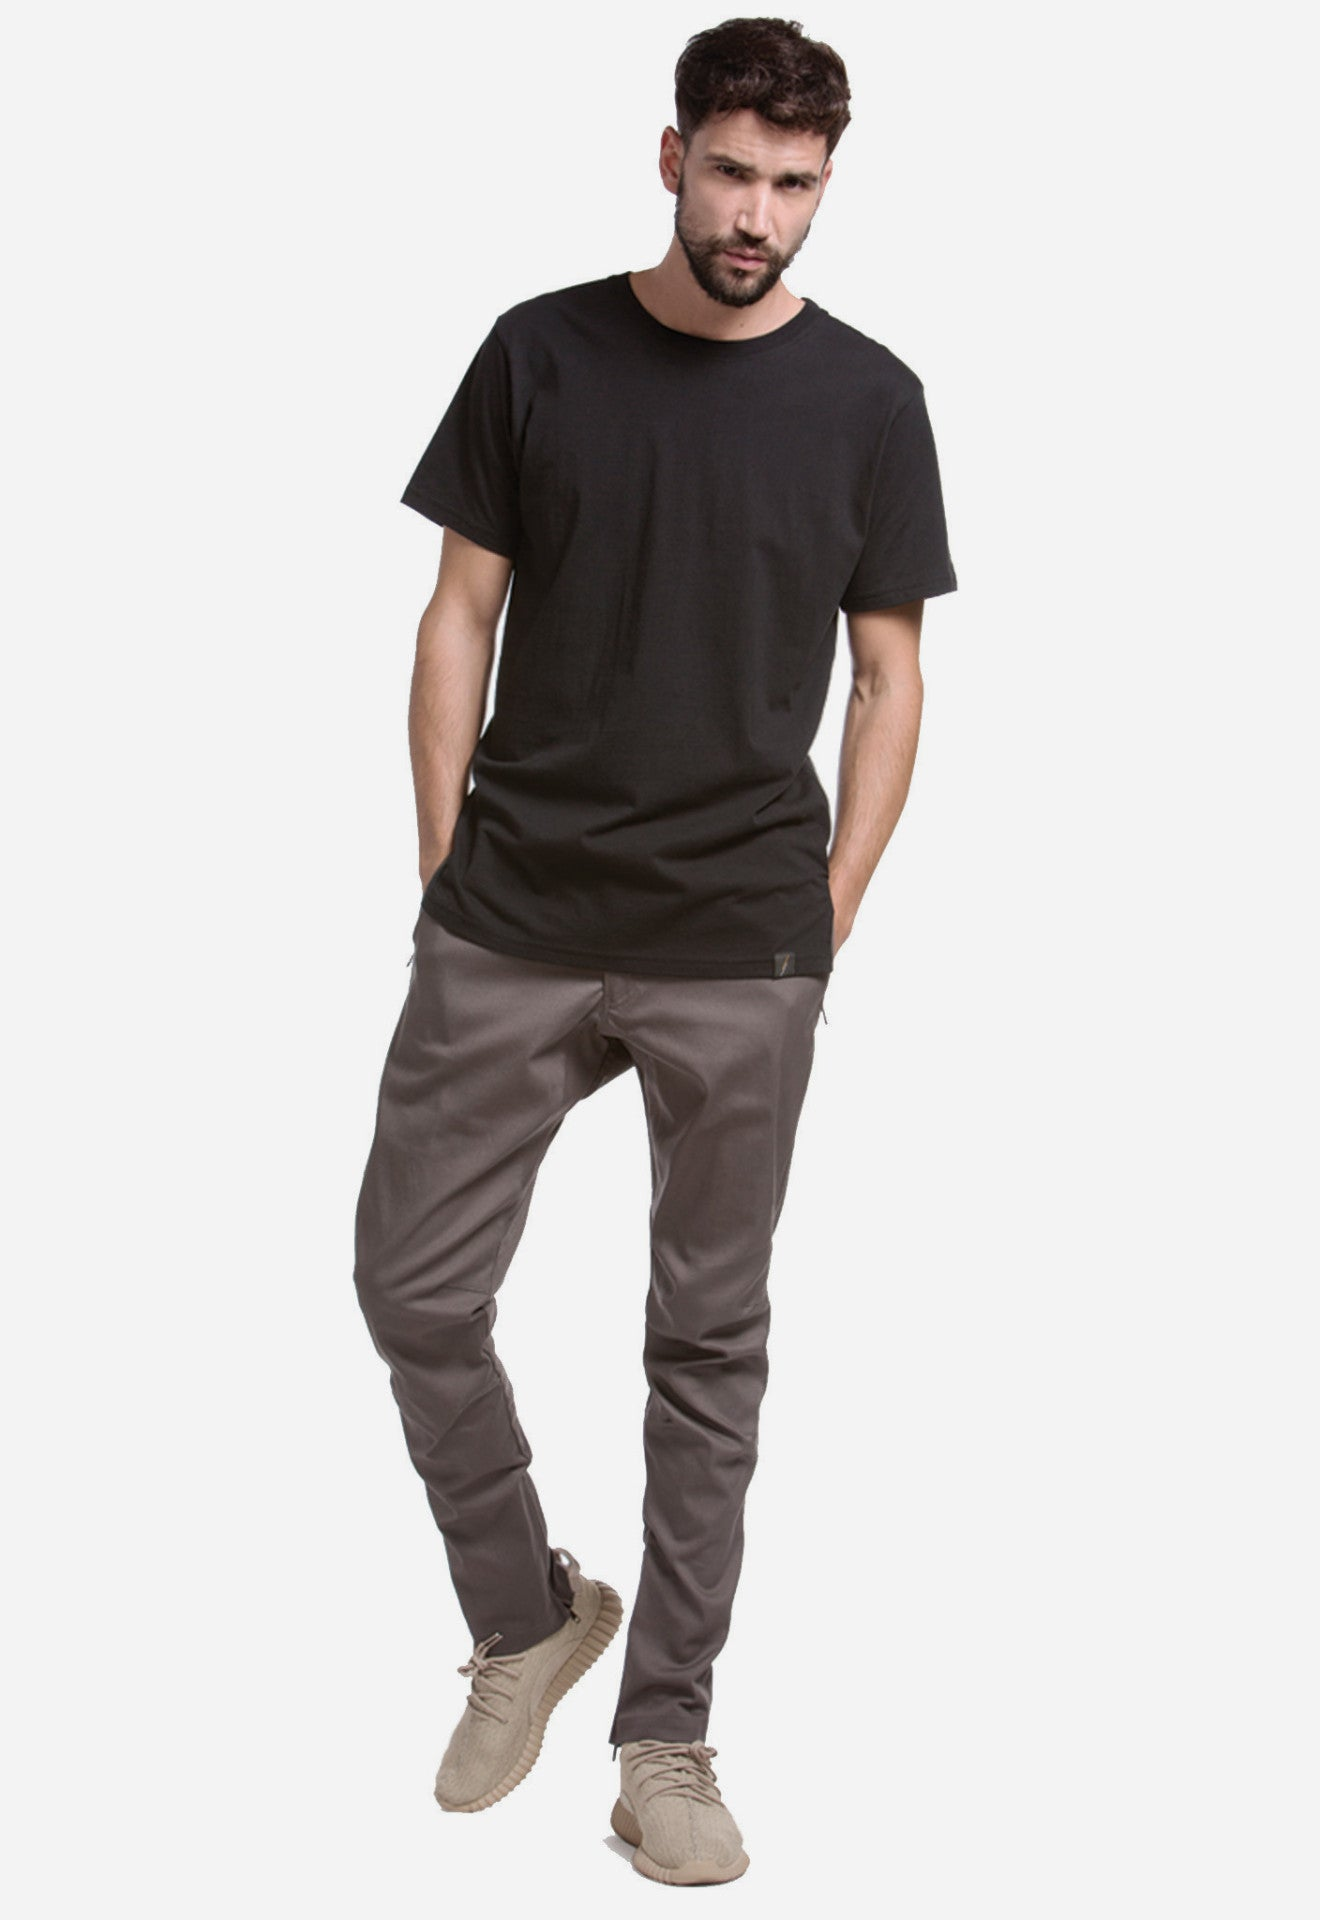 Darted Twill Ankle Zip Pants (Slate Grey)